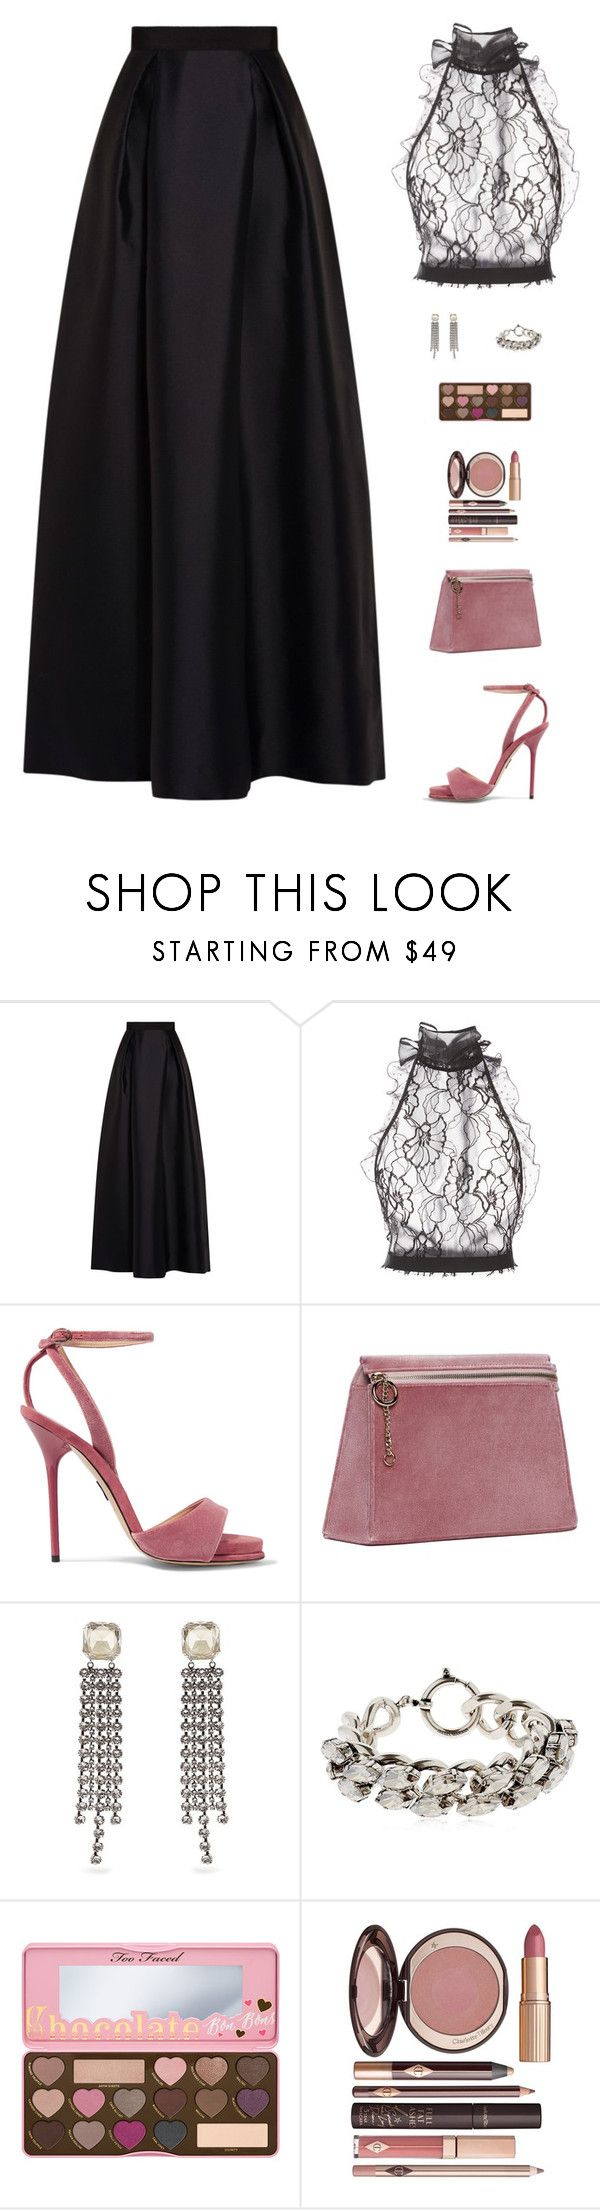 """""""Untitled #5202"""" by mdmsb ❤ liked on Polyvore featuring Alberta Ferretti, Oscar de la Renta, Paul Andrew, Cafuné, Isabel Marant, Too Faced Cosmetics and Charlotte Tilbury"""